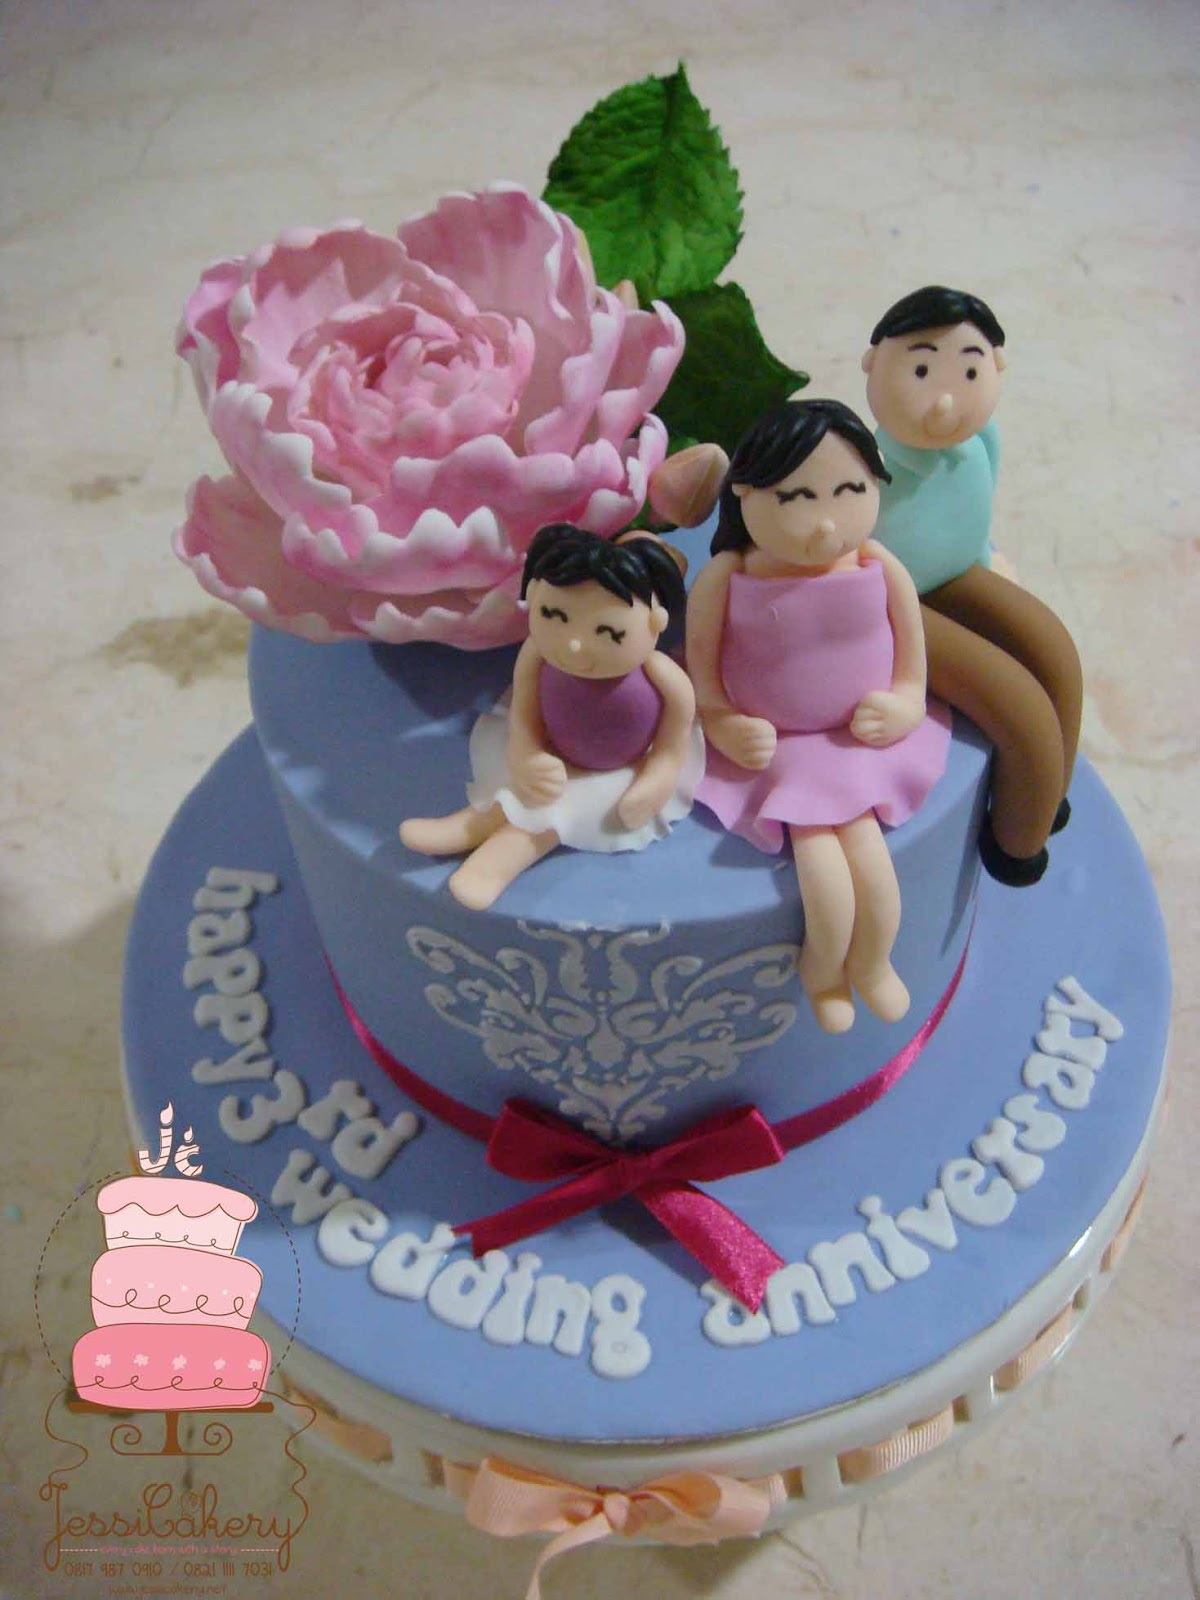 jessicakery: wedding anniversary cake